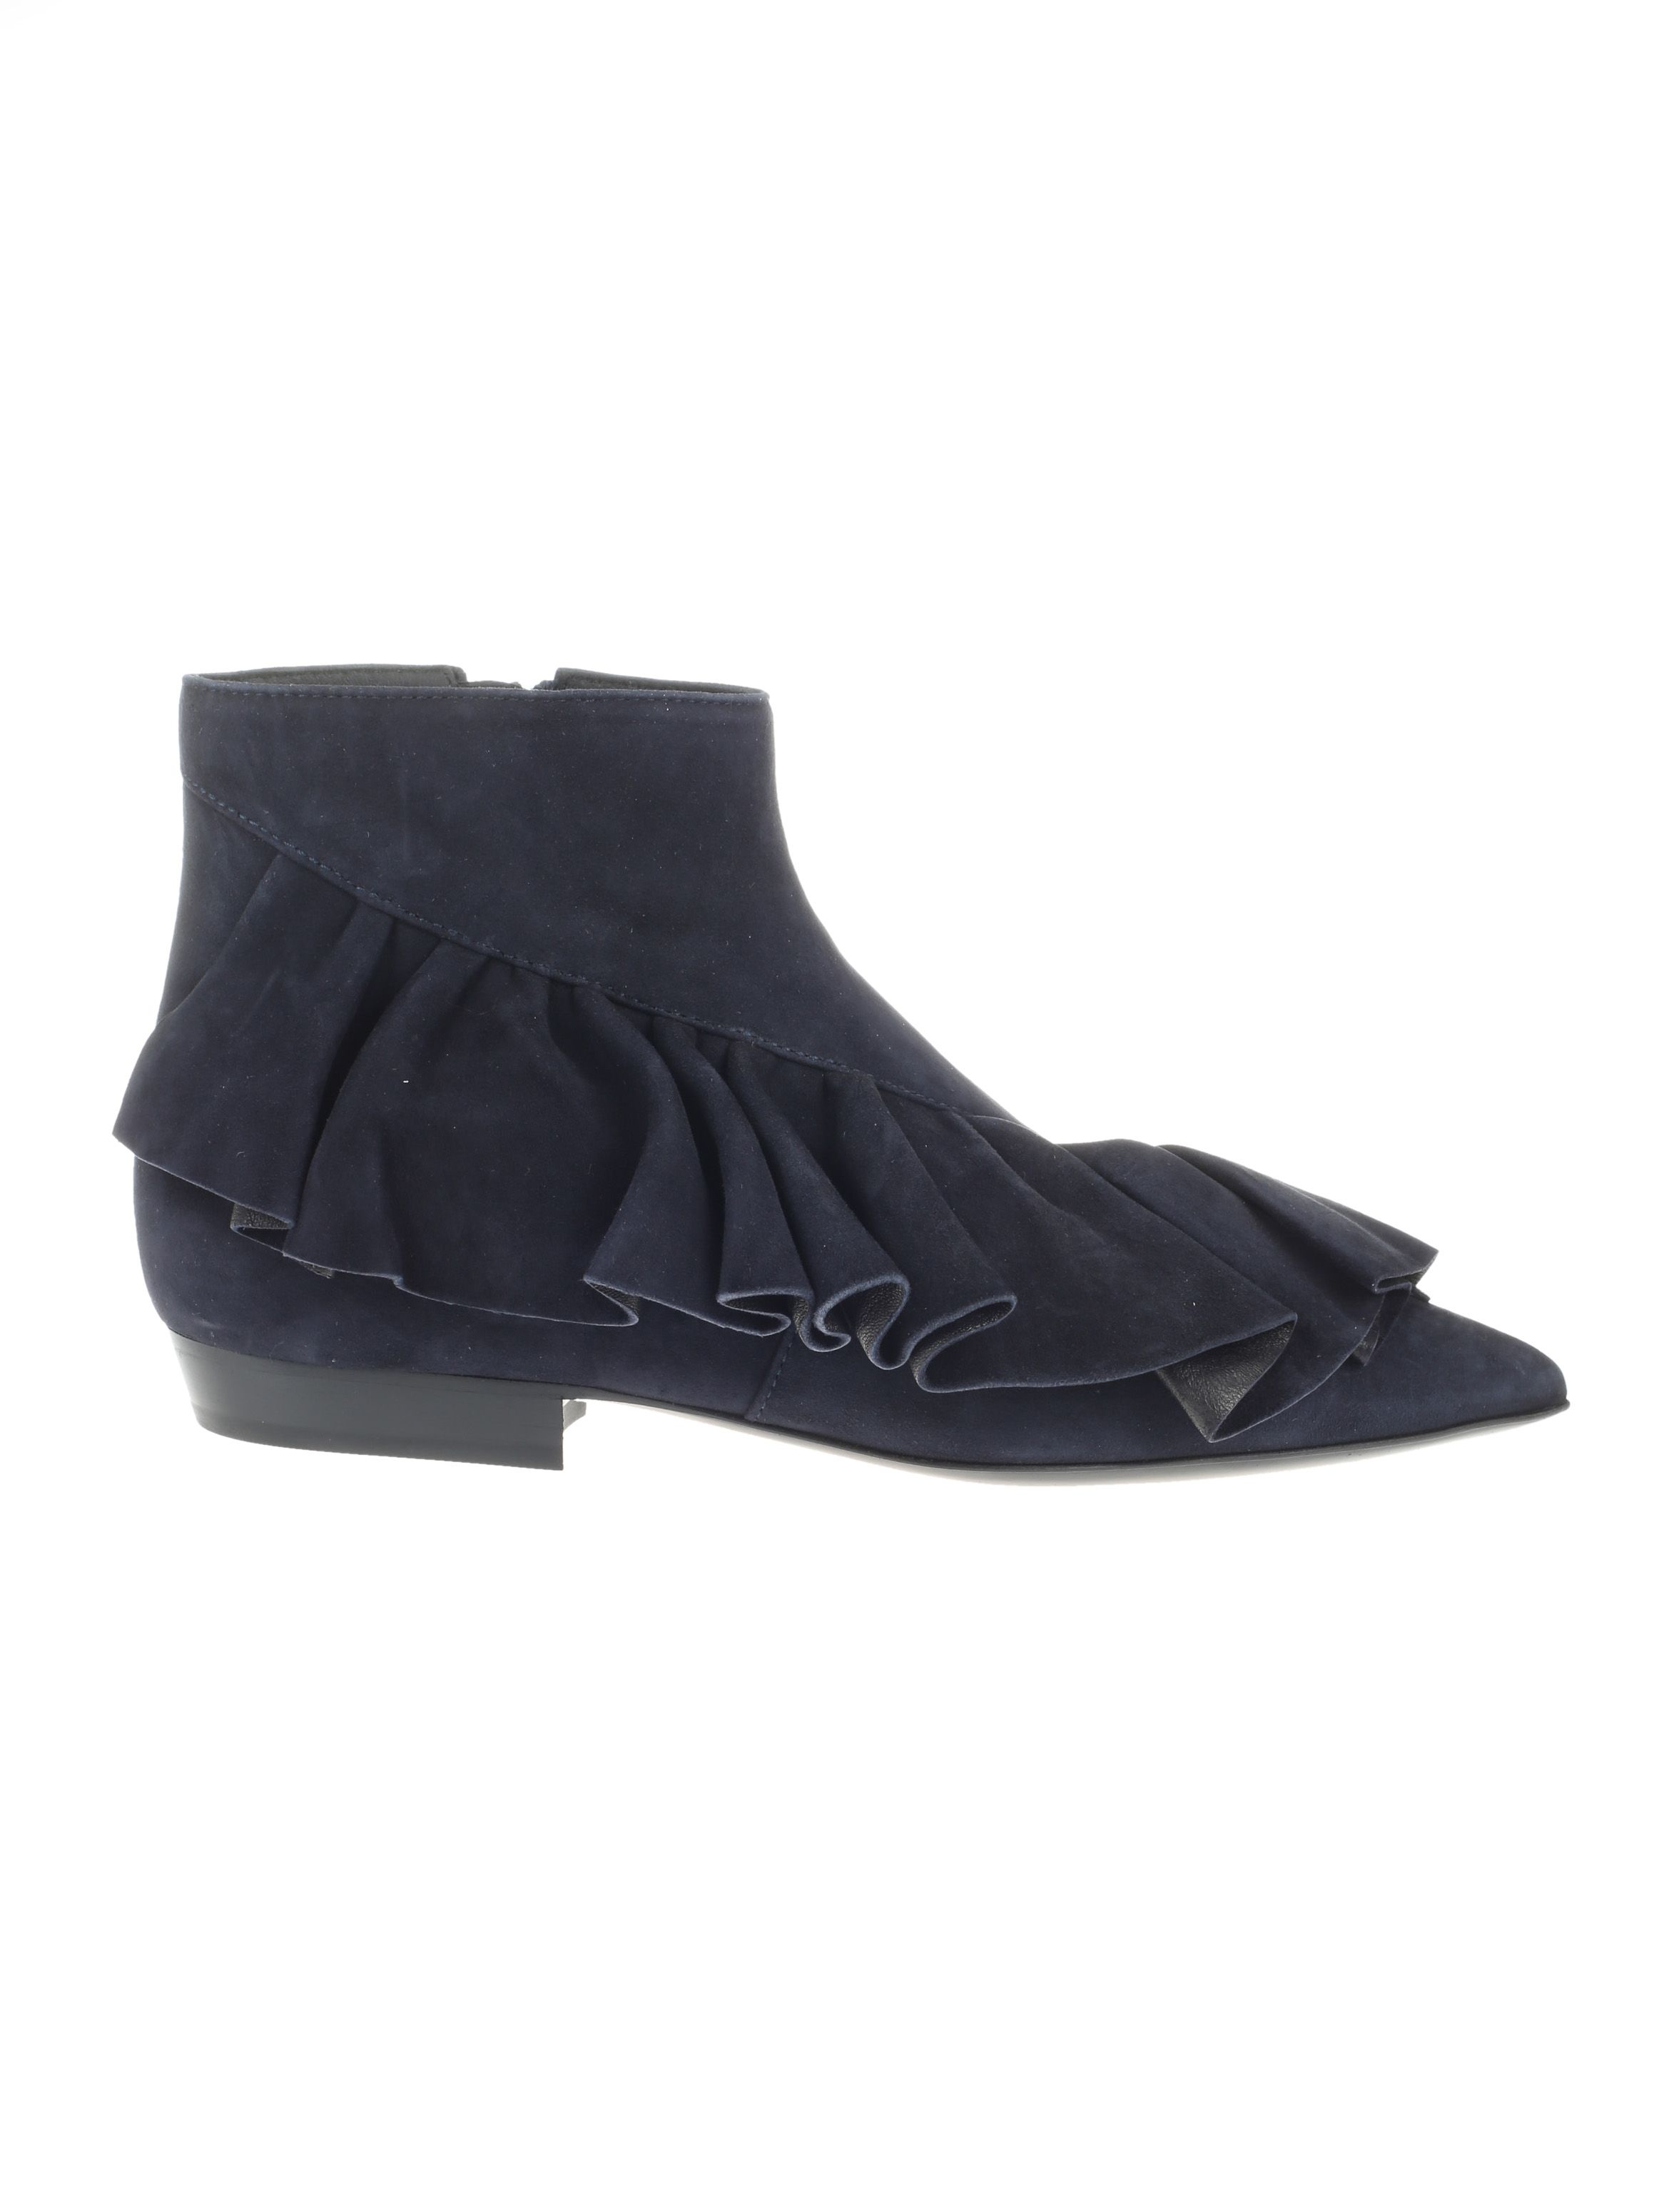 J.W. ANDERSON WOMEN'S  BLUE SUEDE ANKLE BOOTS